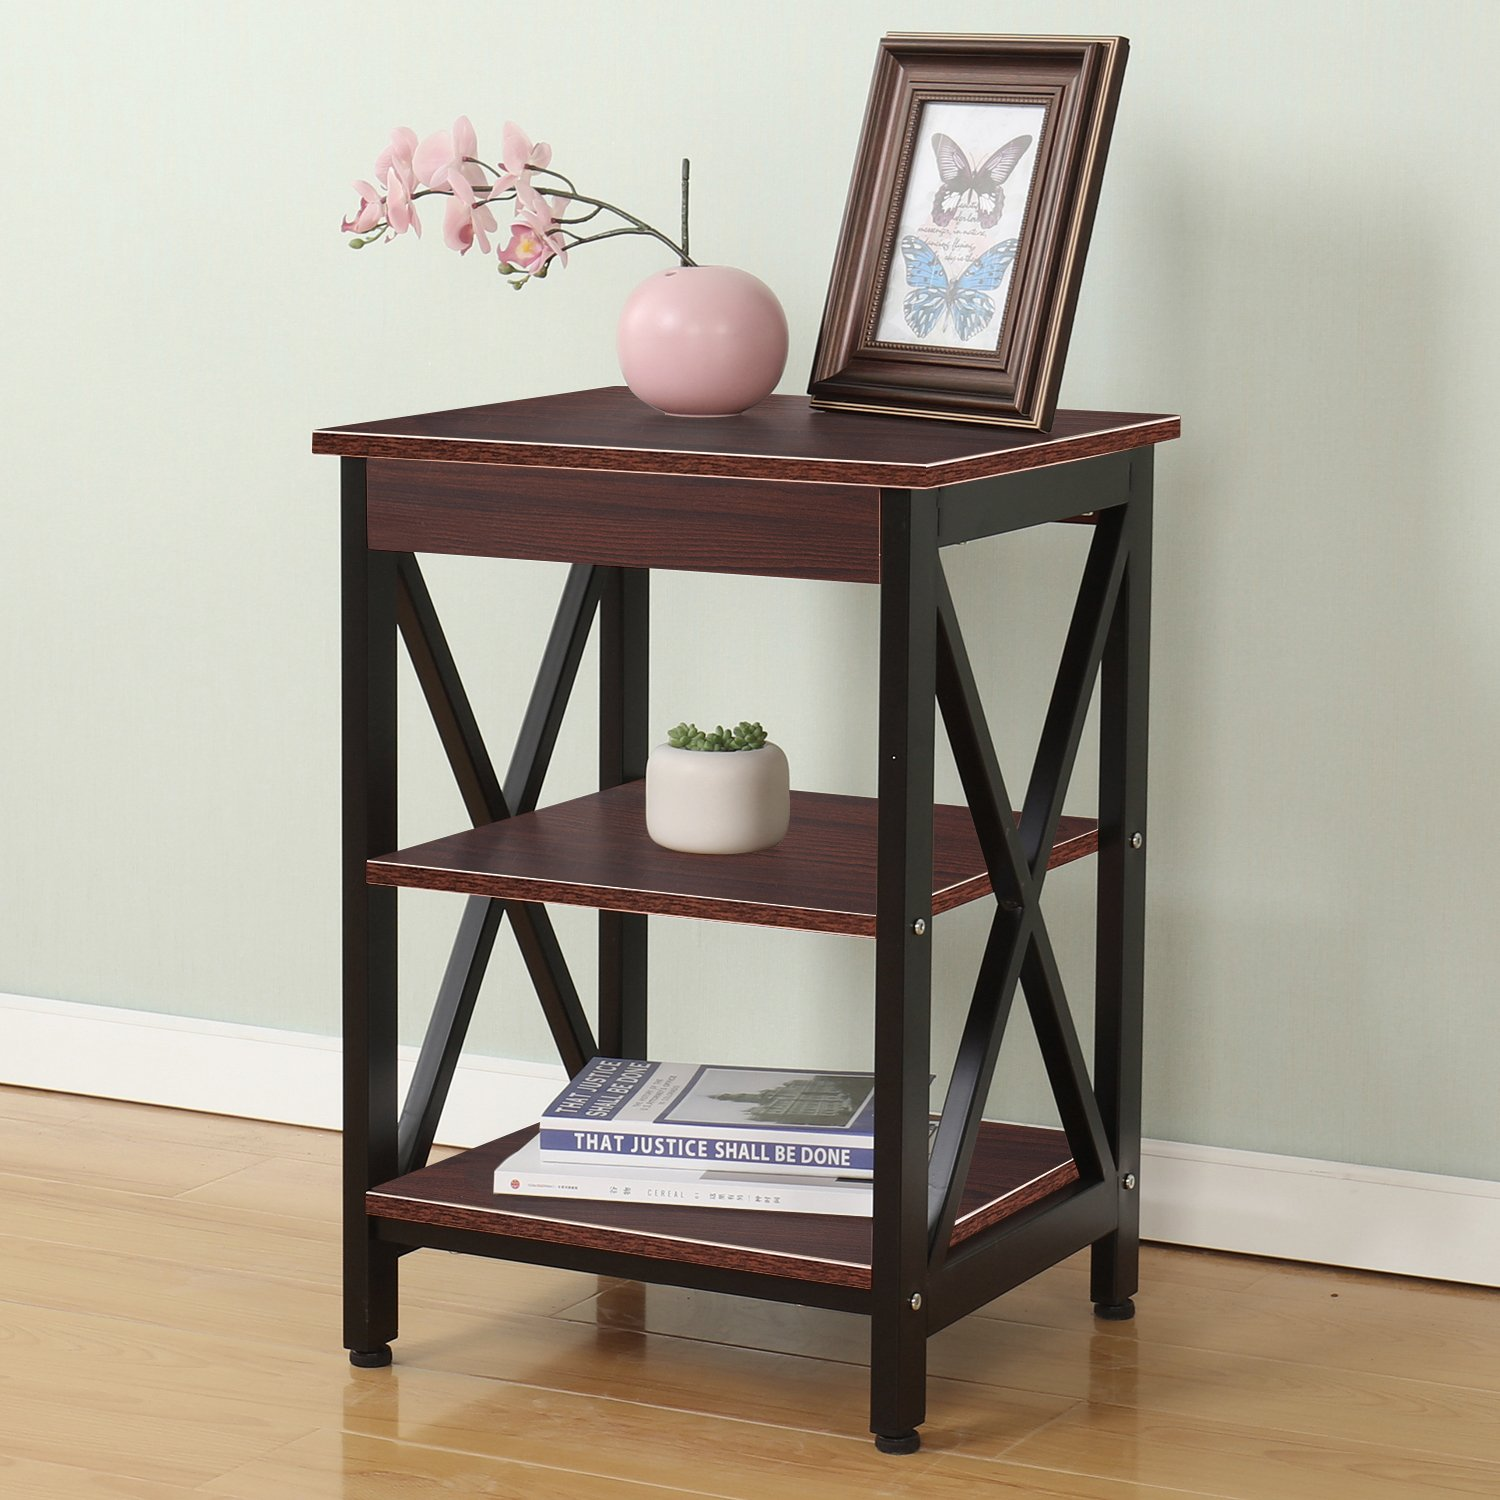 Soges Classic End Table Coffee Table Night Stand Side Table Sofa Table with 3-tier Shelf 17 inch, Walnut WK-FCJ001-RD